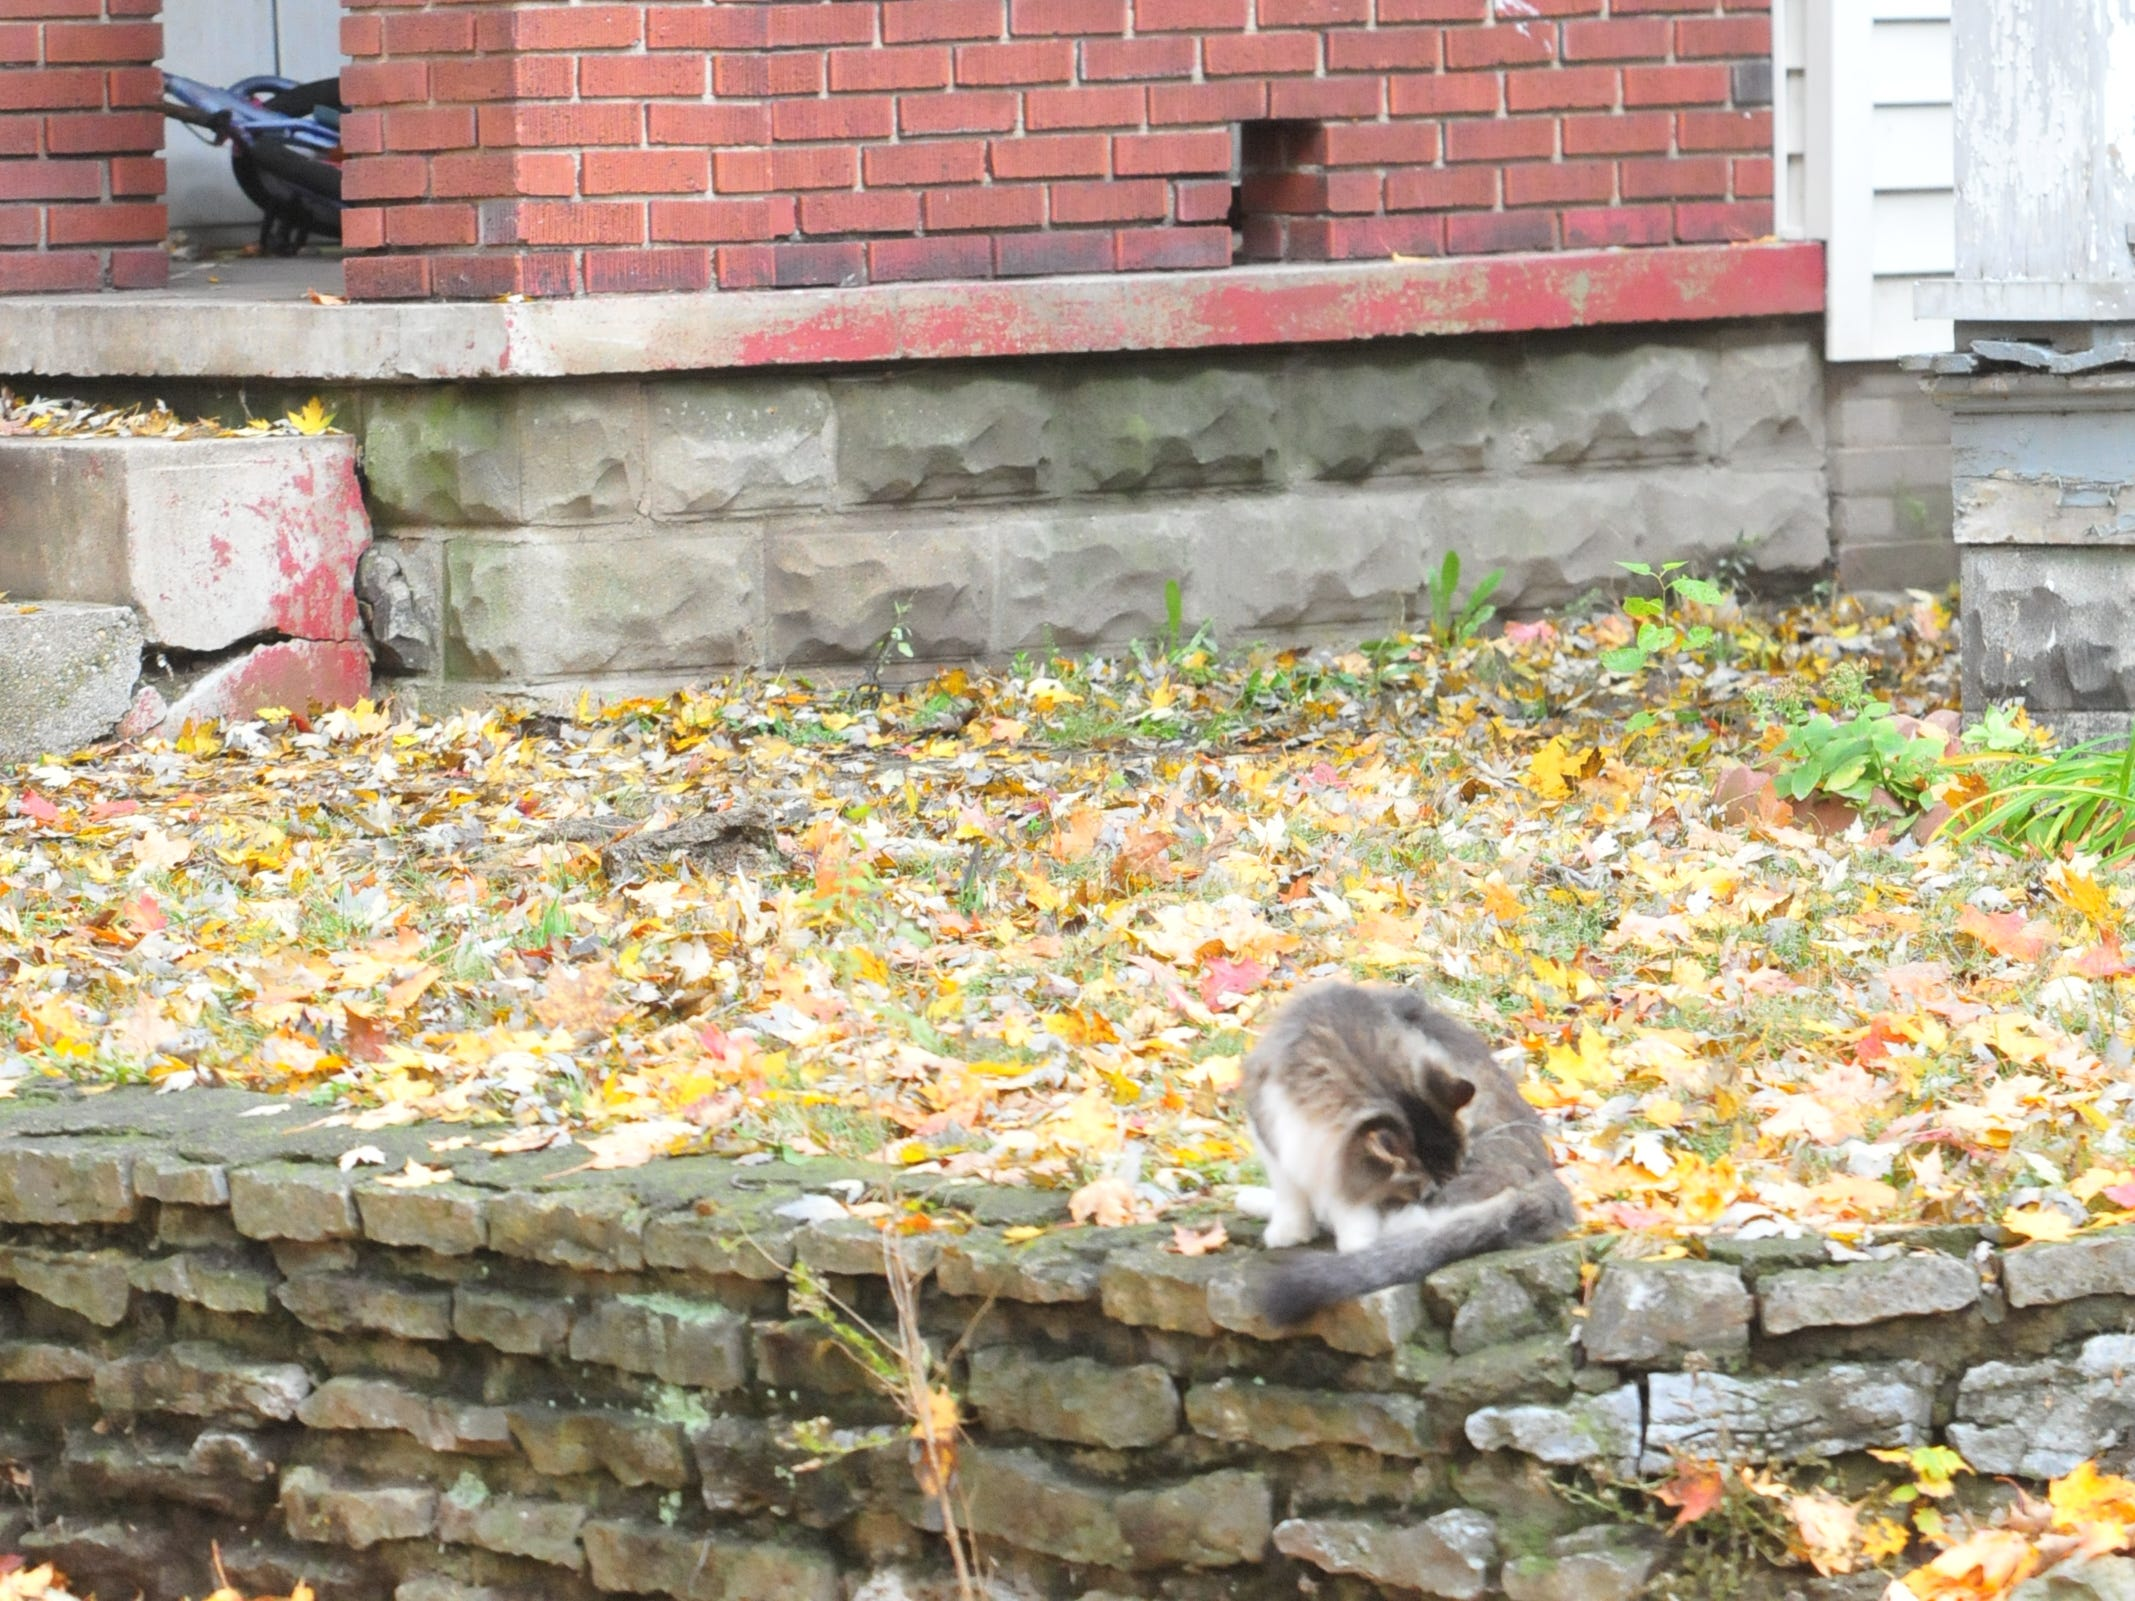 A cat pays no attention to a SWAT raid Monday at 219 N. 16th St.